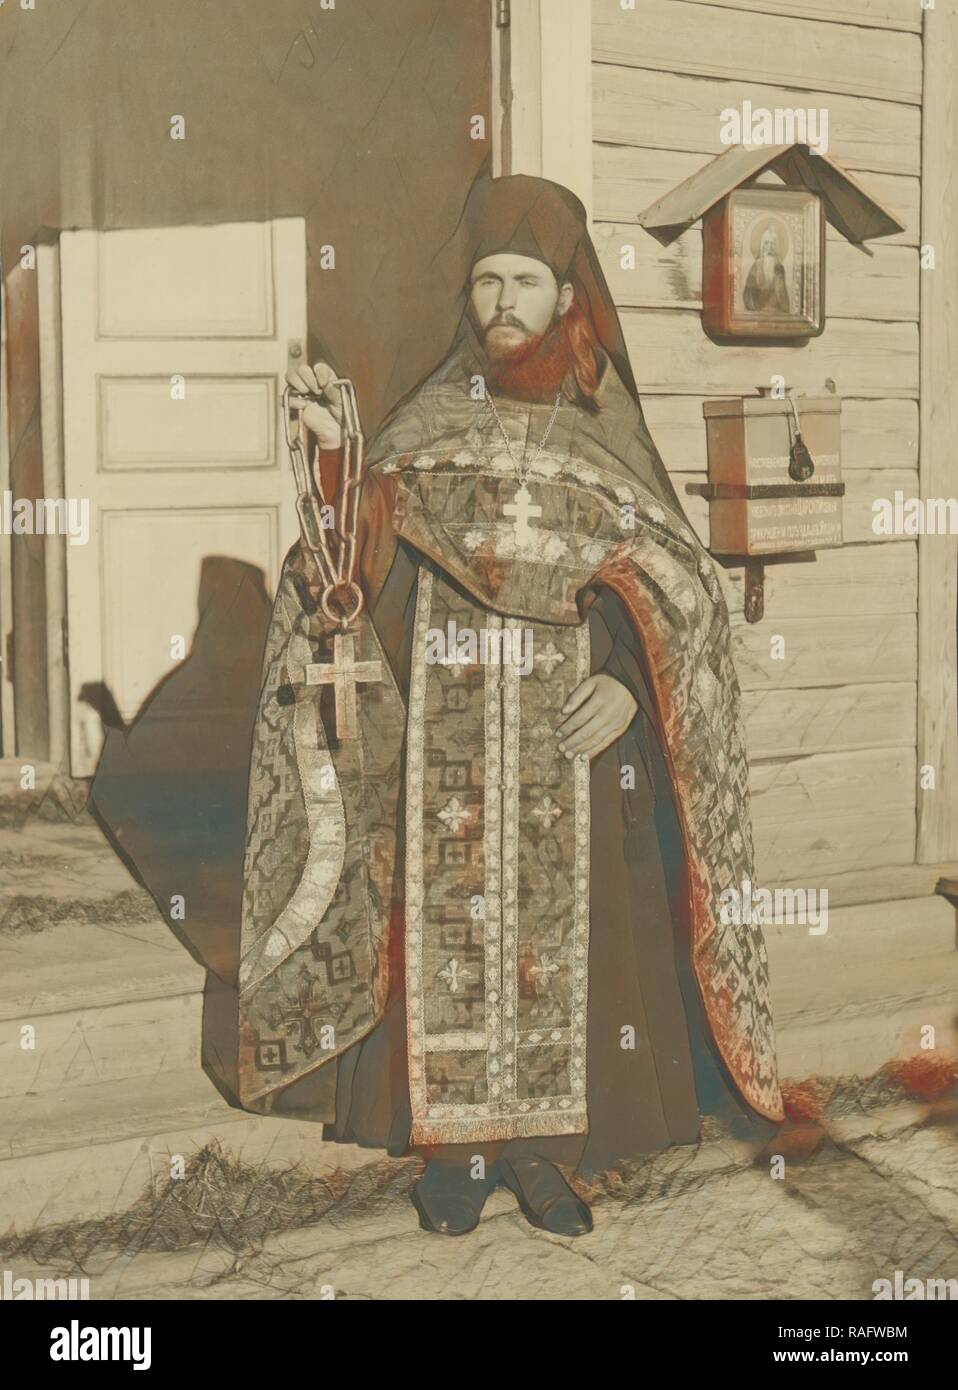 Priest with an old miracle-working cross, Karl Karlovitz Bulla (Russian, 1854 - 1929), 1913, Gelatin silver print, 18 reimagined - Stock Image